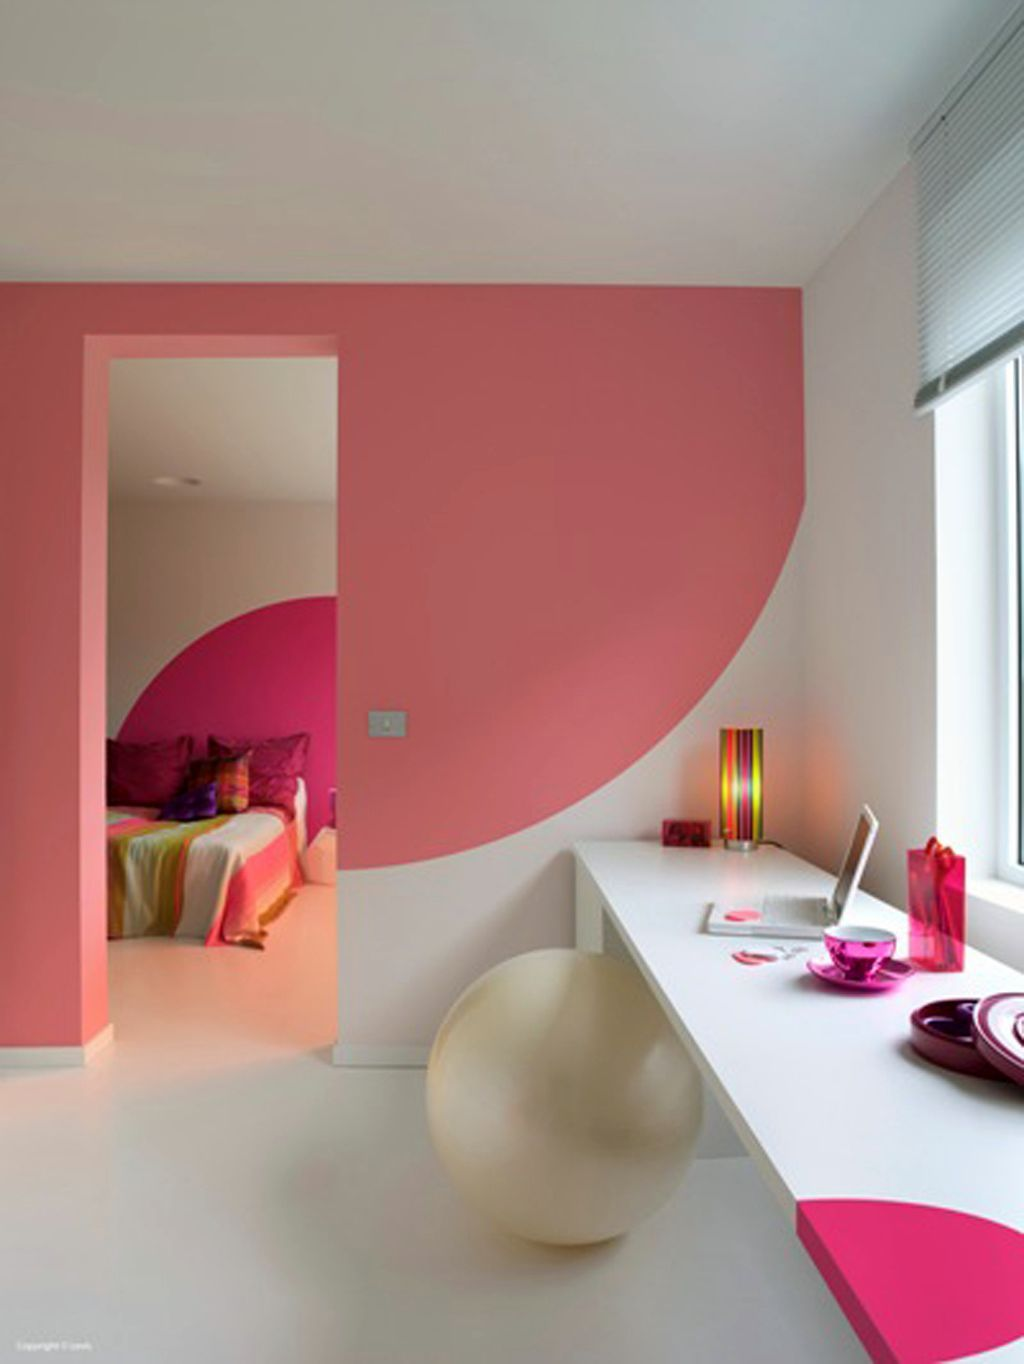 Pink bedroom painting ideas - Image Cool Bedroom Paint Designs Half Circle Pink Cool Wall Painting Designs